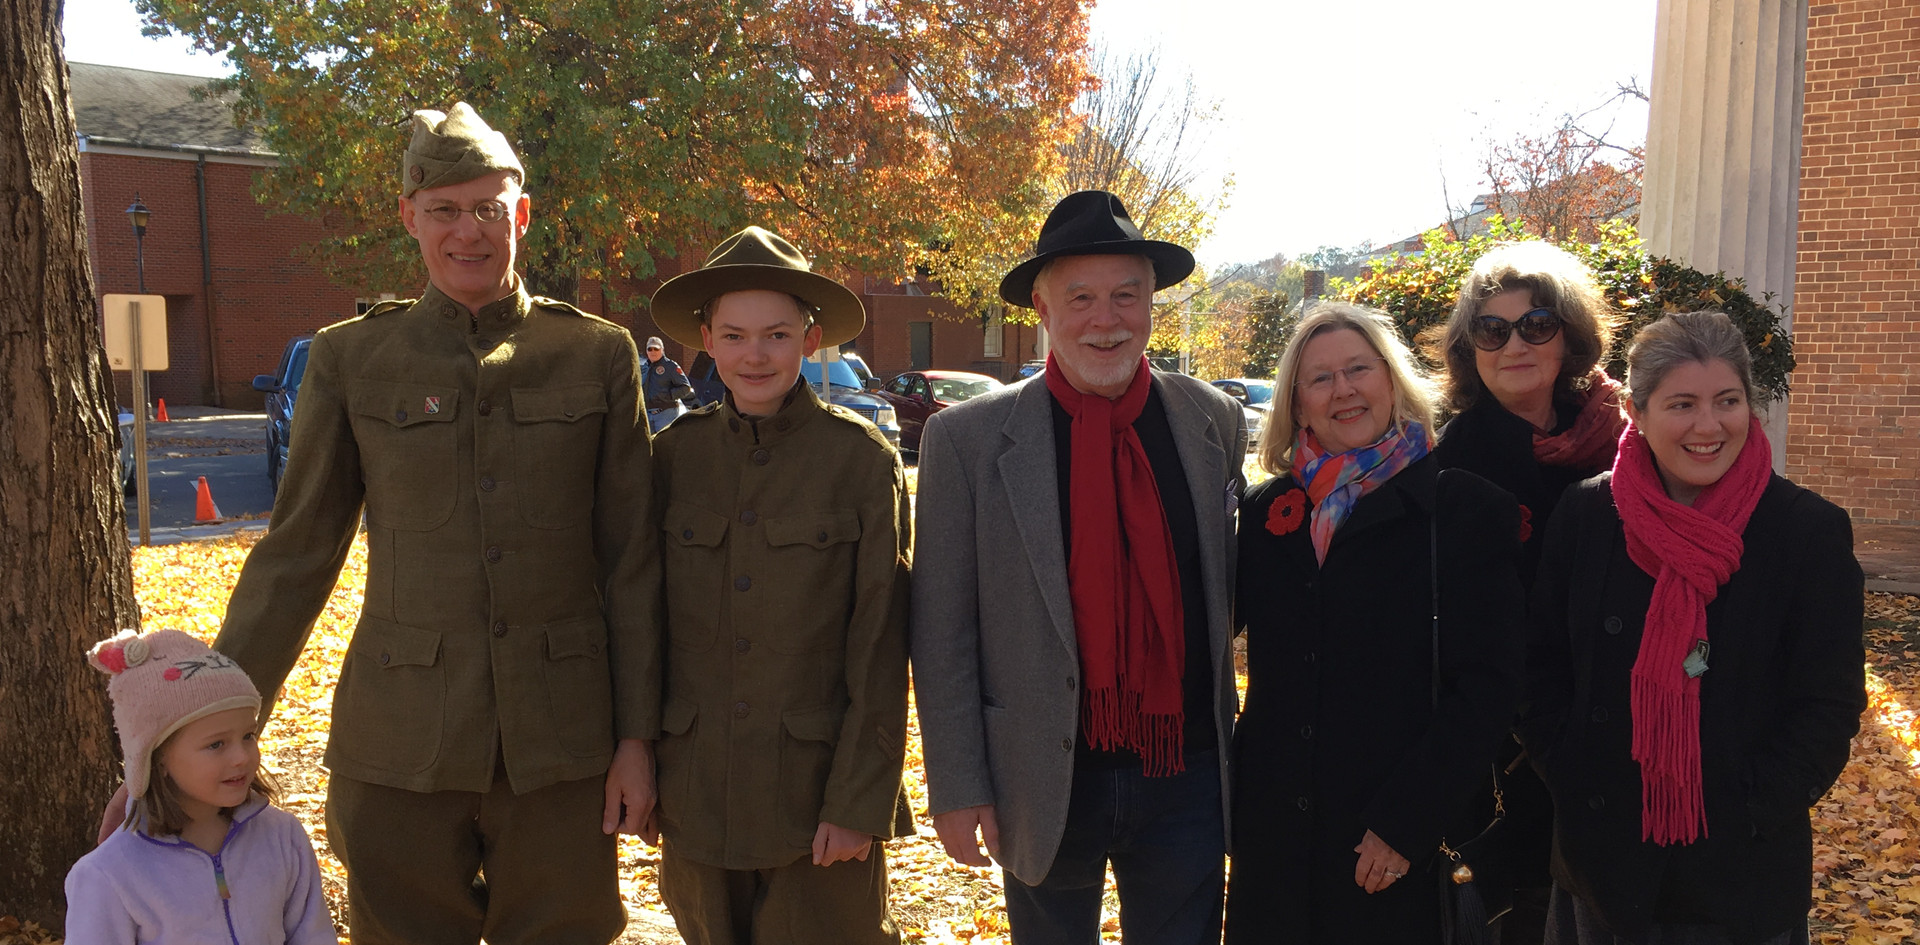 Veteran's Day Celebration honoring 100th Anniversary of WWI